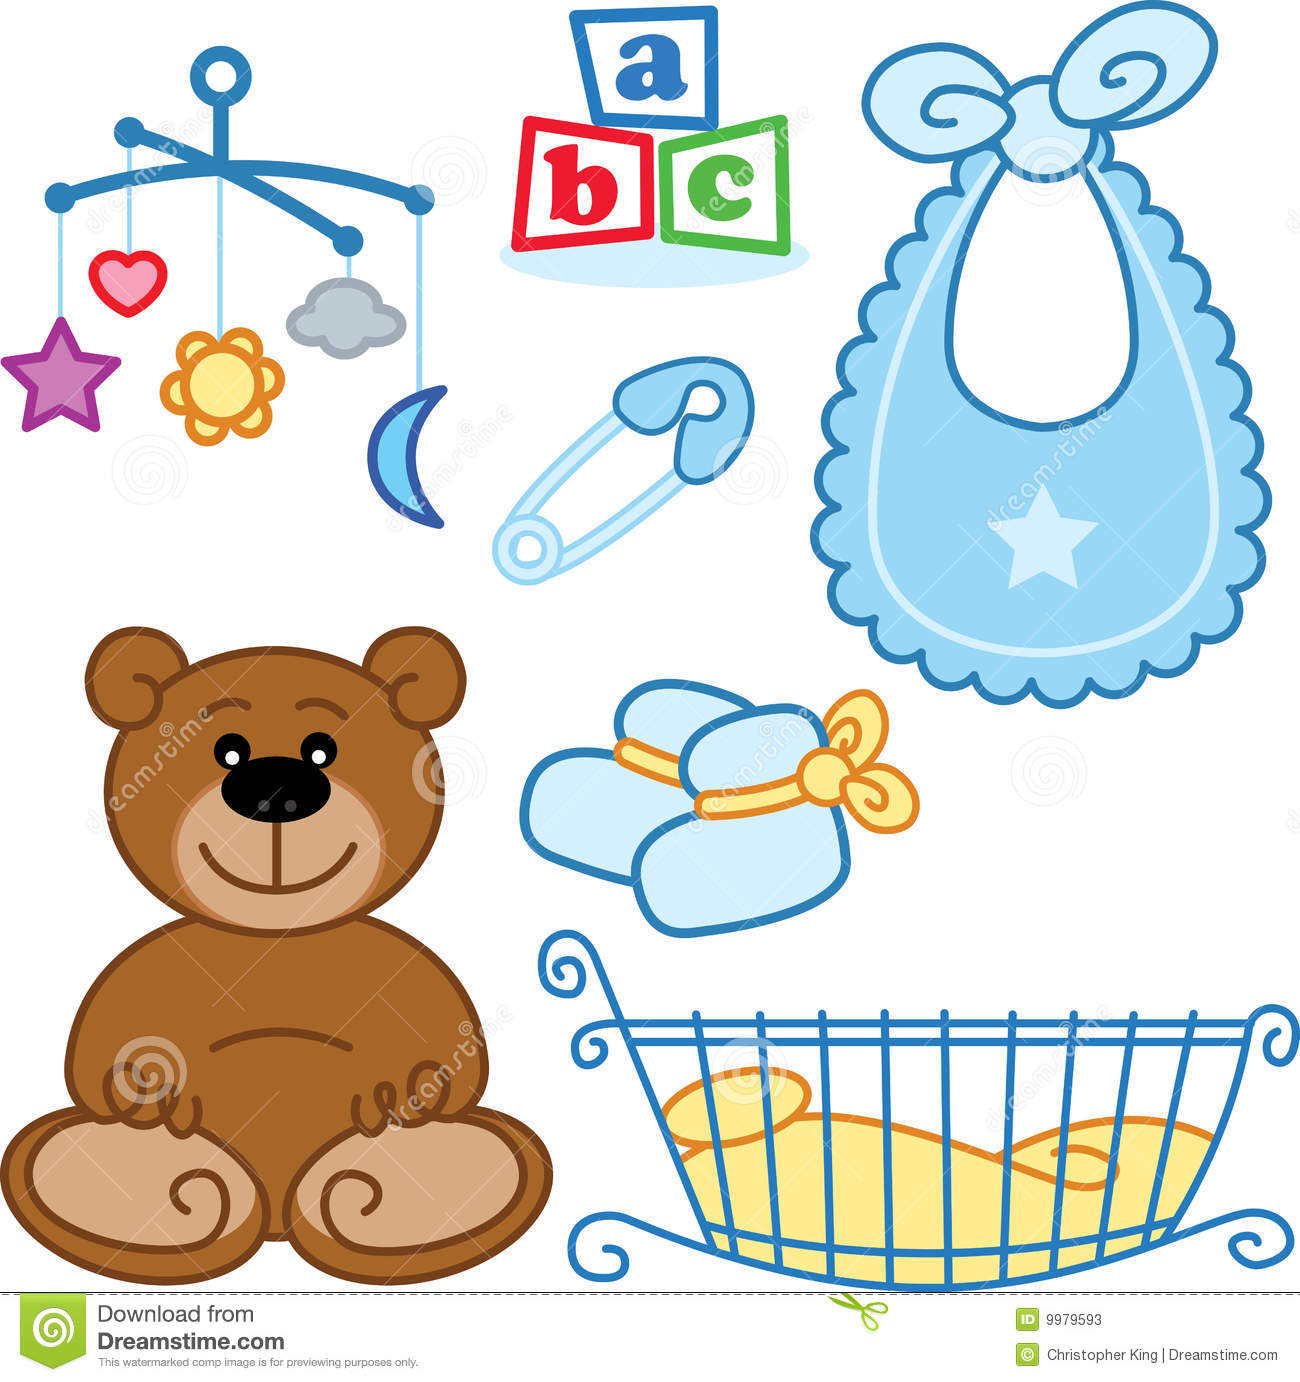 Cute Baby Toys : Cute new born baby toys graphic elements stock vector